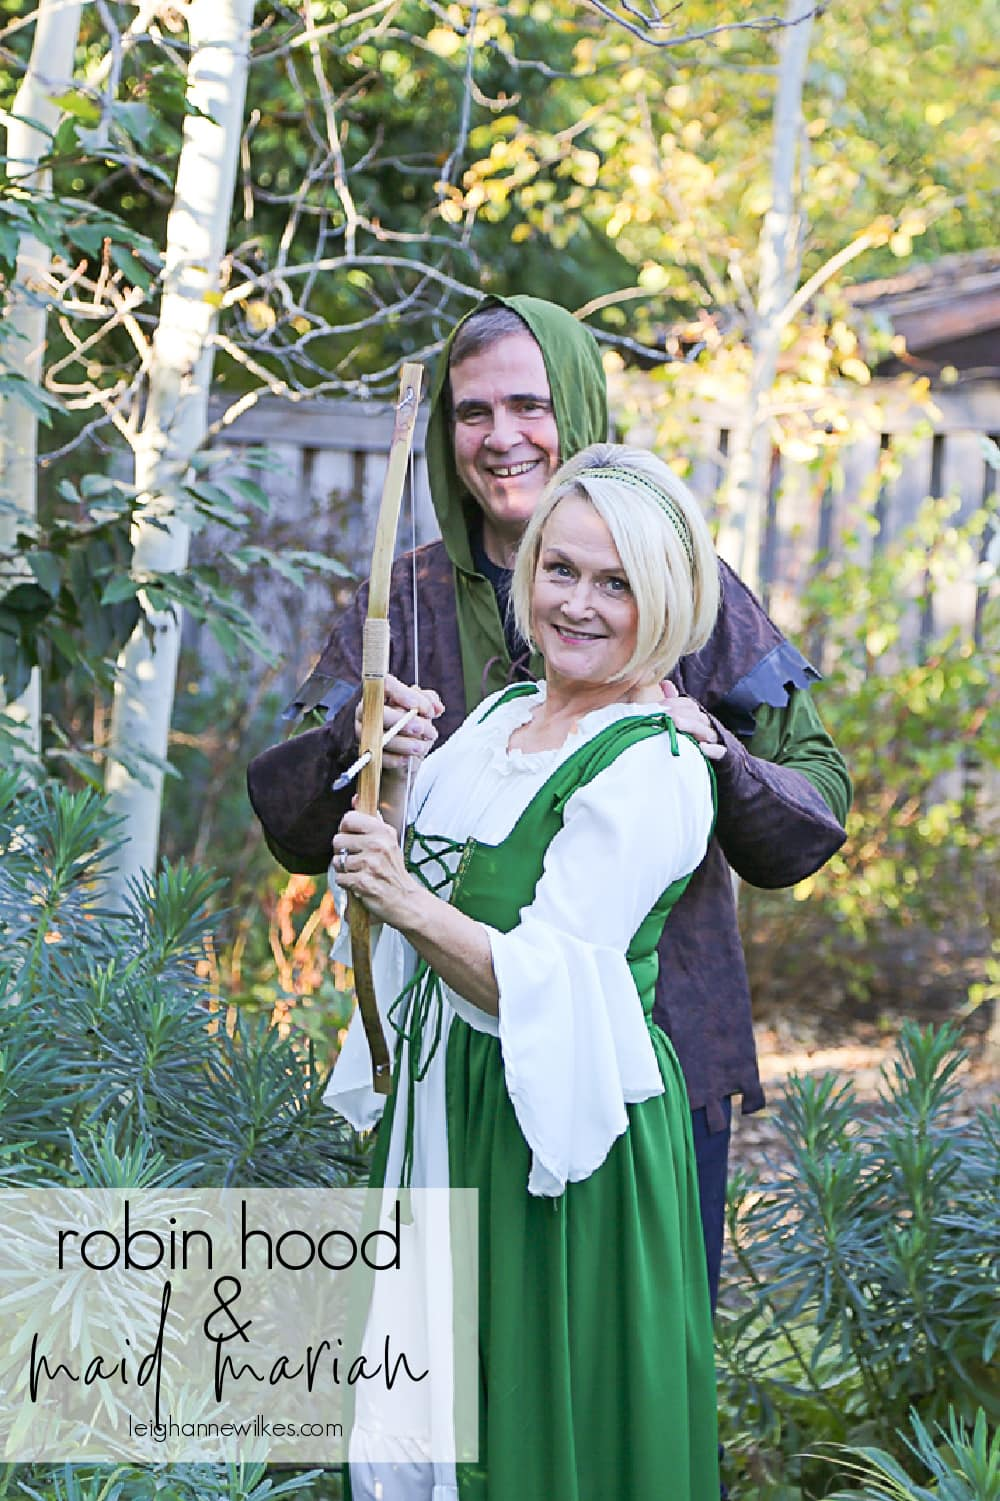 robin hood and maid marian costume idea